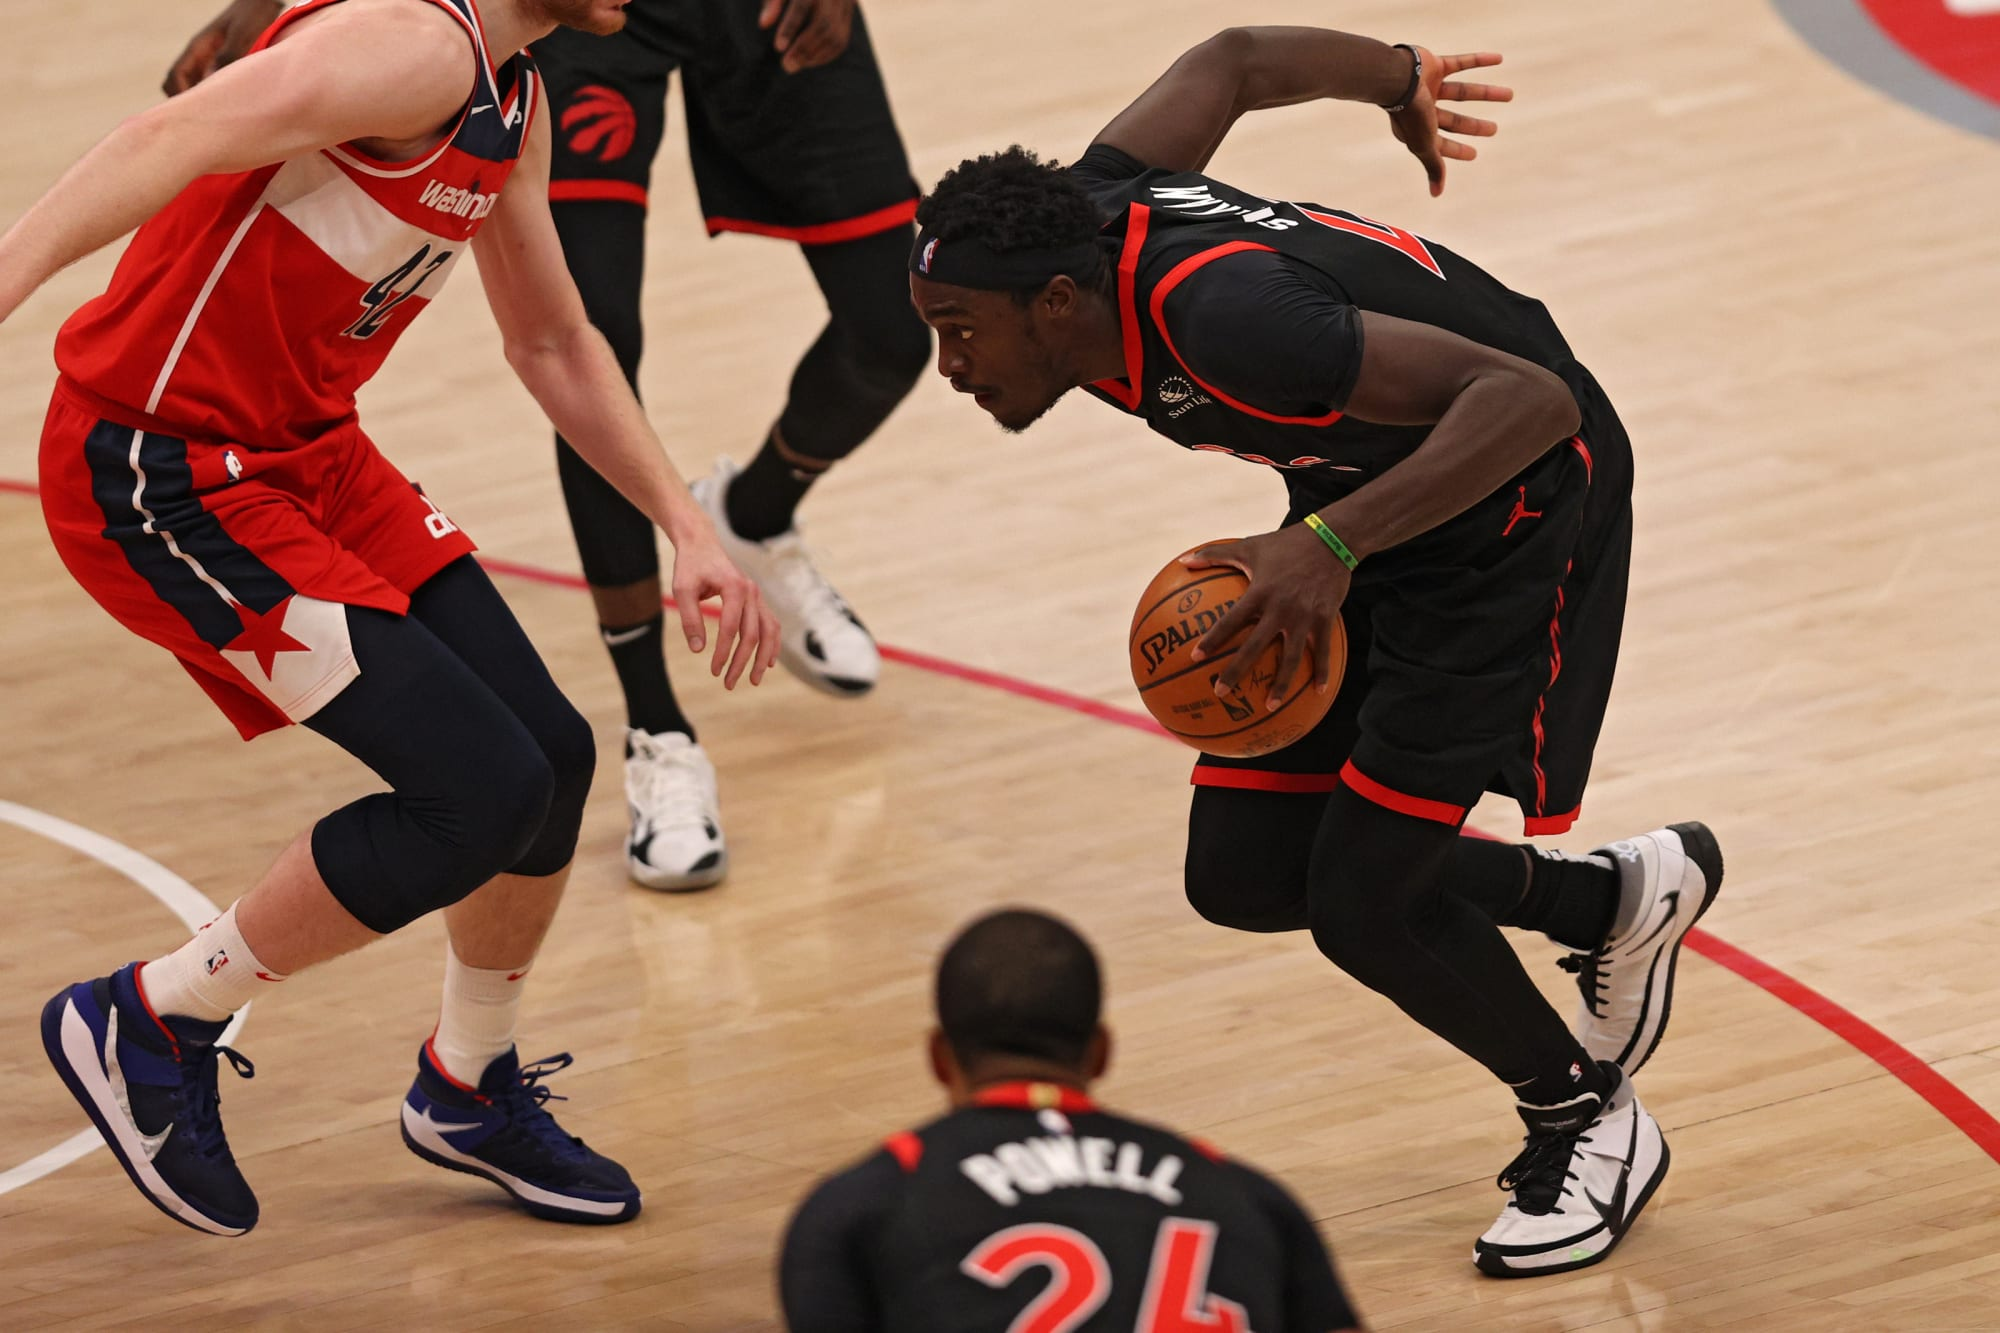 Raptors recap: Pascal Siakam leads wire-to-wire win over poor Wizards defense